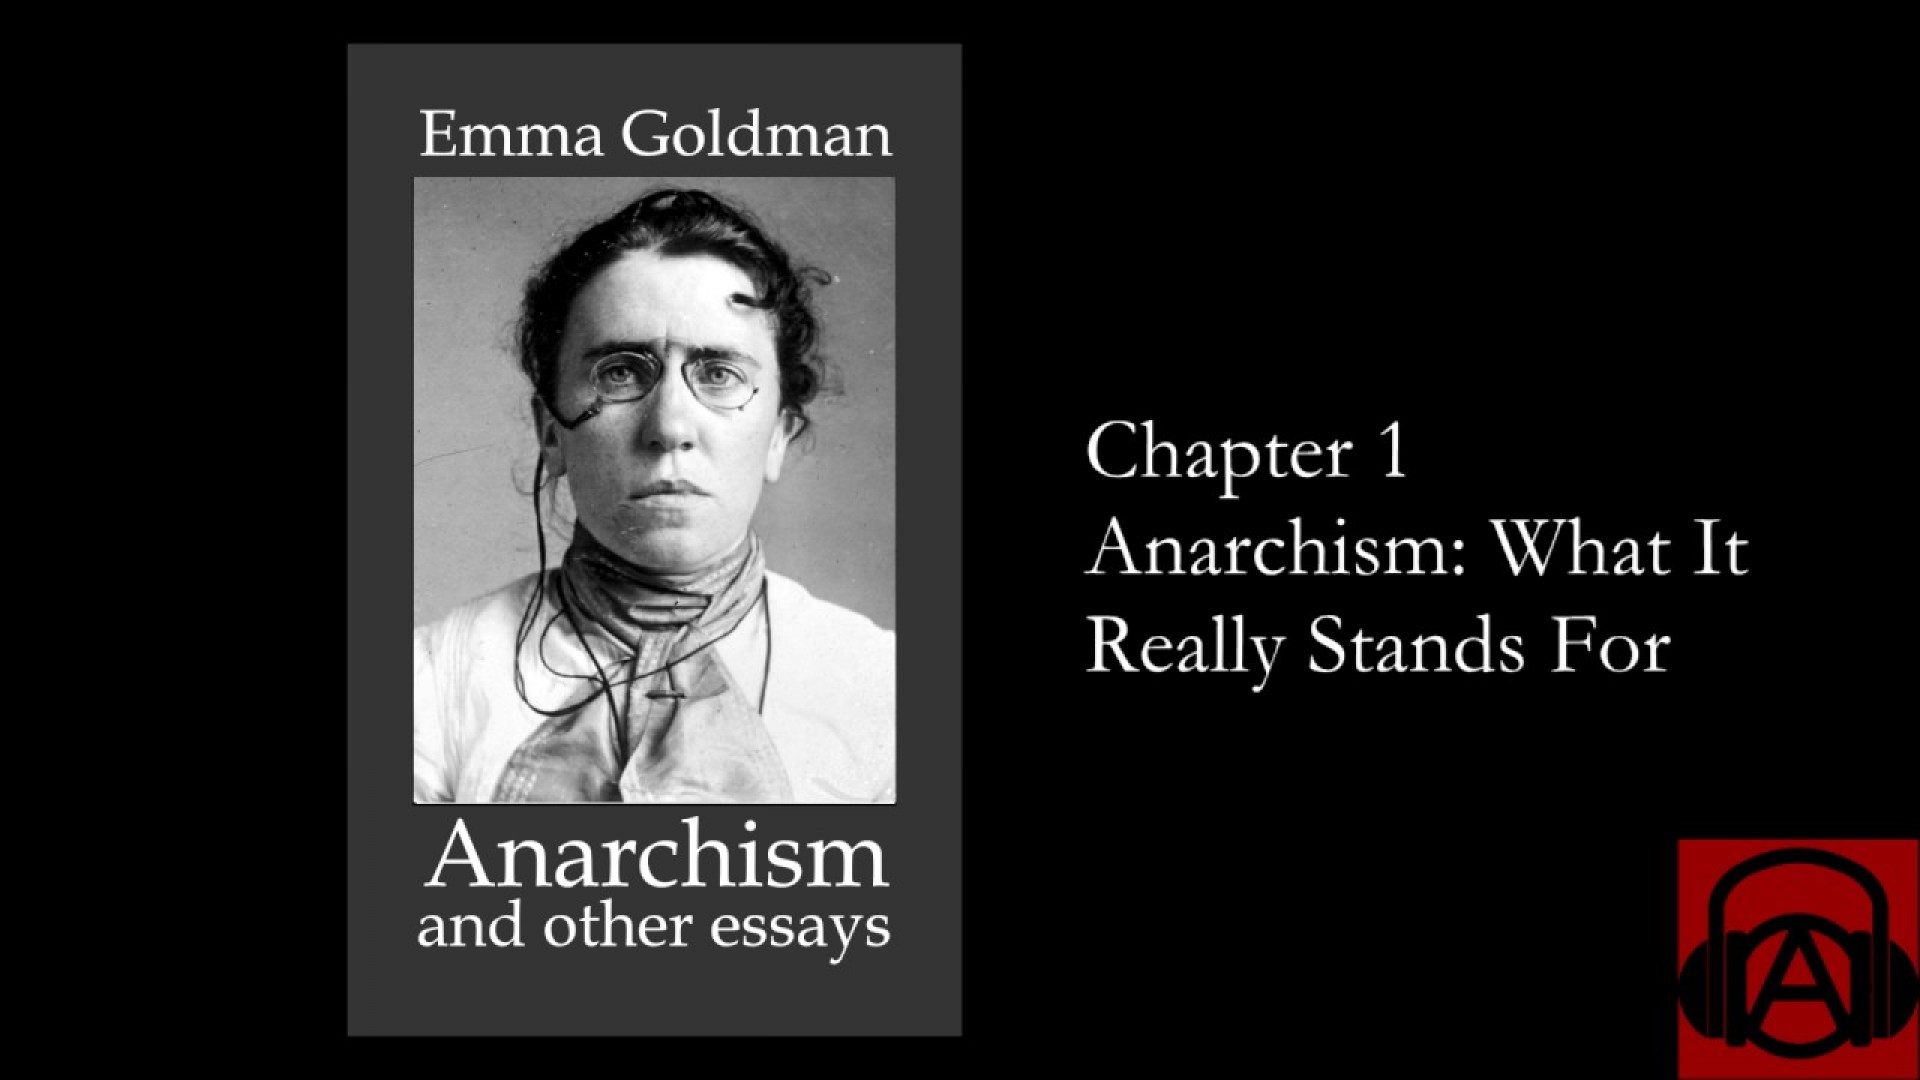 005 Anarchism And Other Essays Essay Example Incredible Emma Goldman Summary Mla Citation 1920